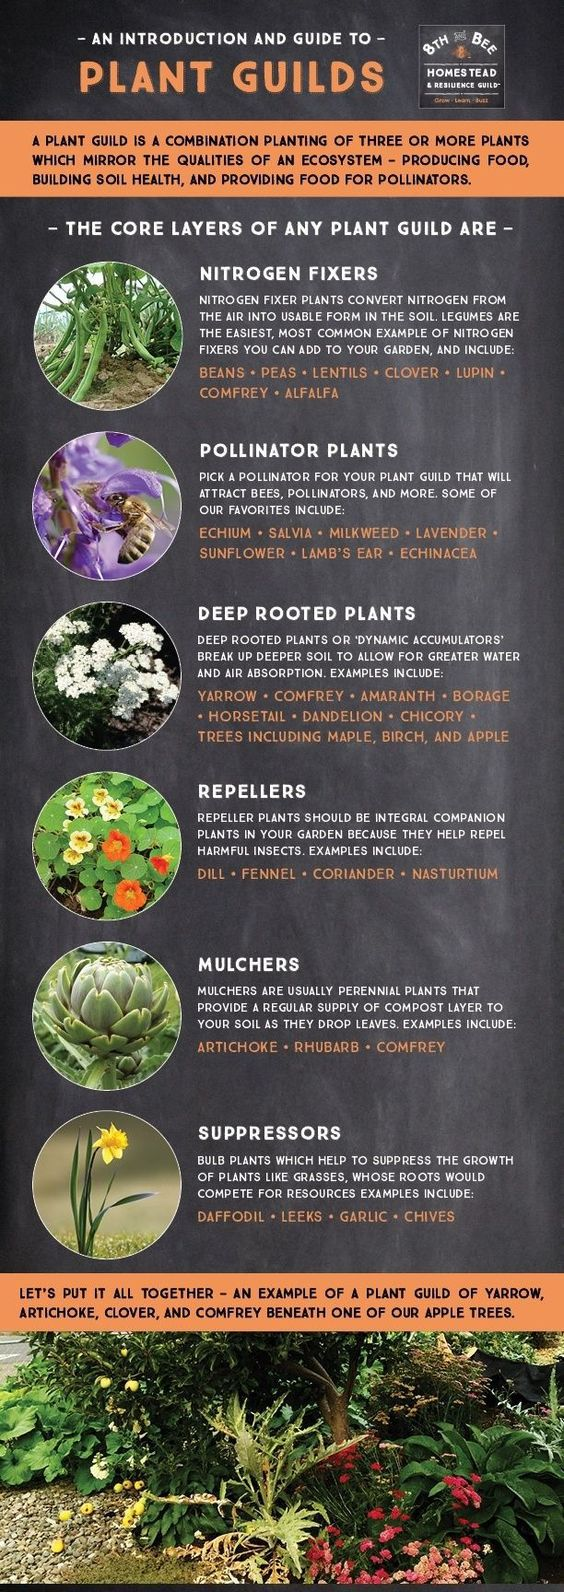 Food Forests & Plant Guilds in Permaculture Design is part of Food forest garden, Permaculture gardening, Plants, Forest garden, Pollinator plants, Forest plants - Plant guilds are an important aspect of permaculture design  Food forest garden design examples, plant guild examples & the 7 layer food forest